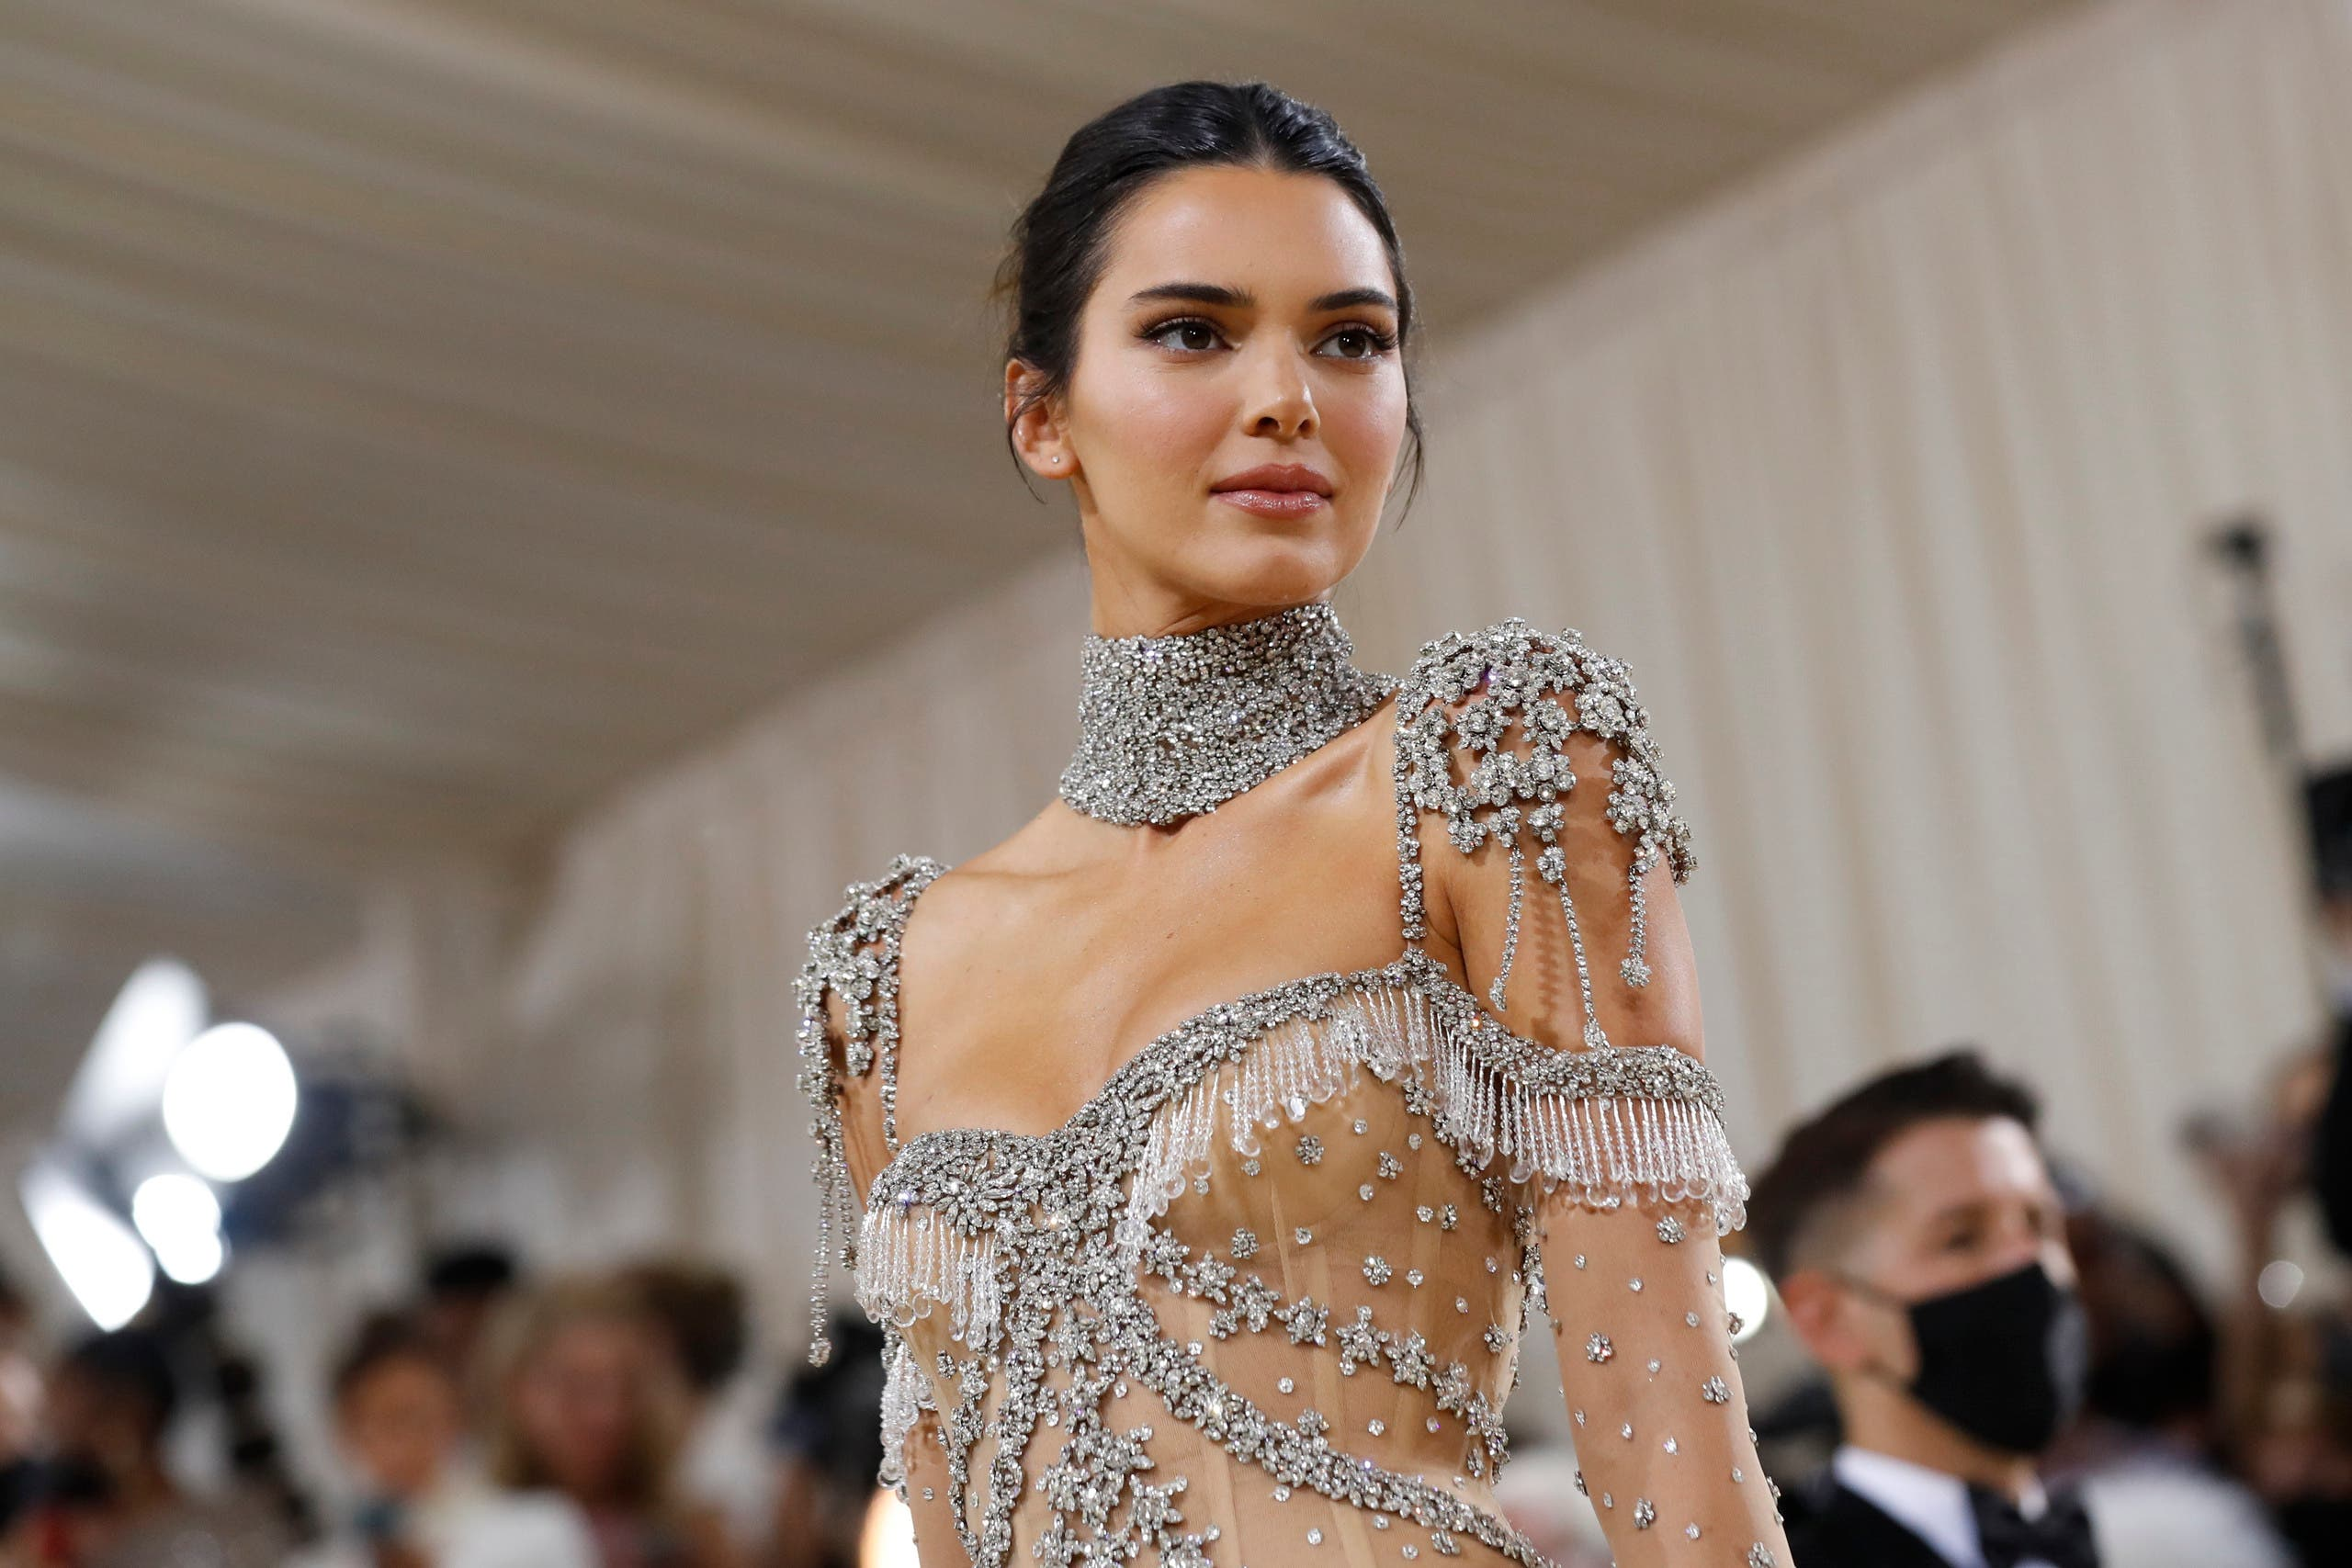 Metropolitan Museum of Art Costume Institute Gala - Met Gala - In America: A Lexicon of Fashion - Arrivals - New York City, US - September 13, 2021. Kendall Jenner. (Reuters)